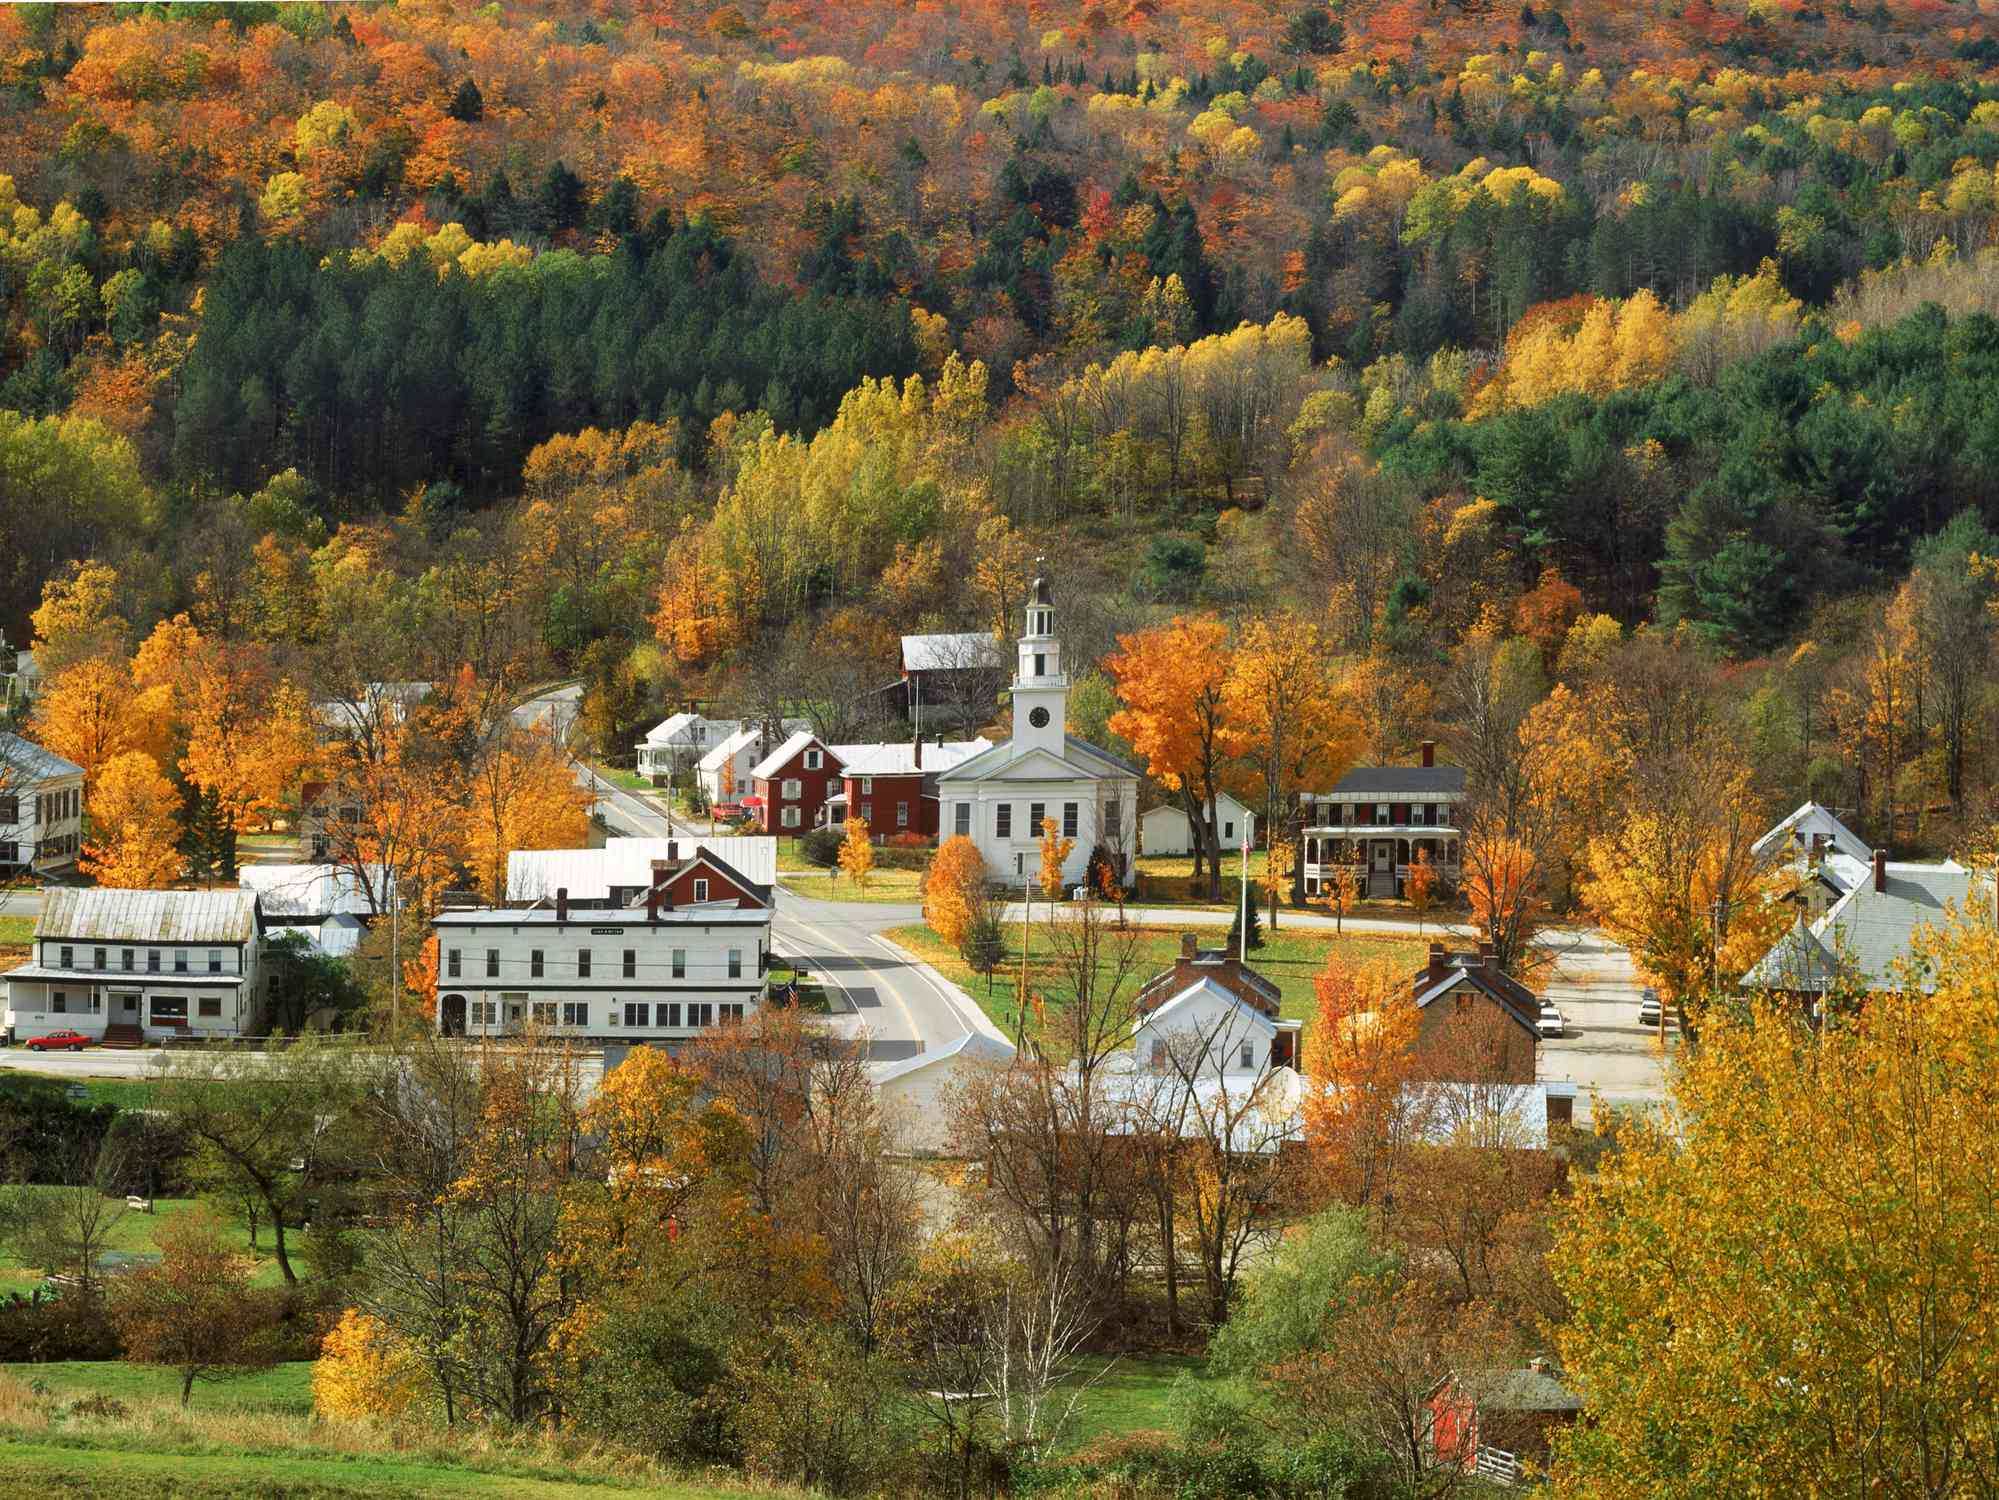 Red and white buildings in the town of Chelsea, Vermont surrounded by fall foliage